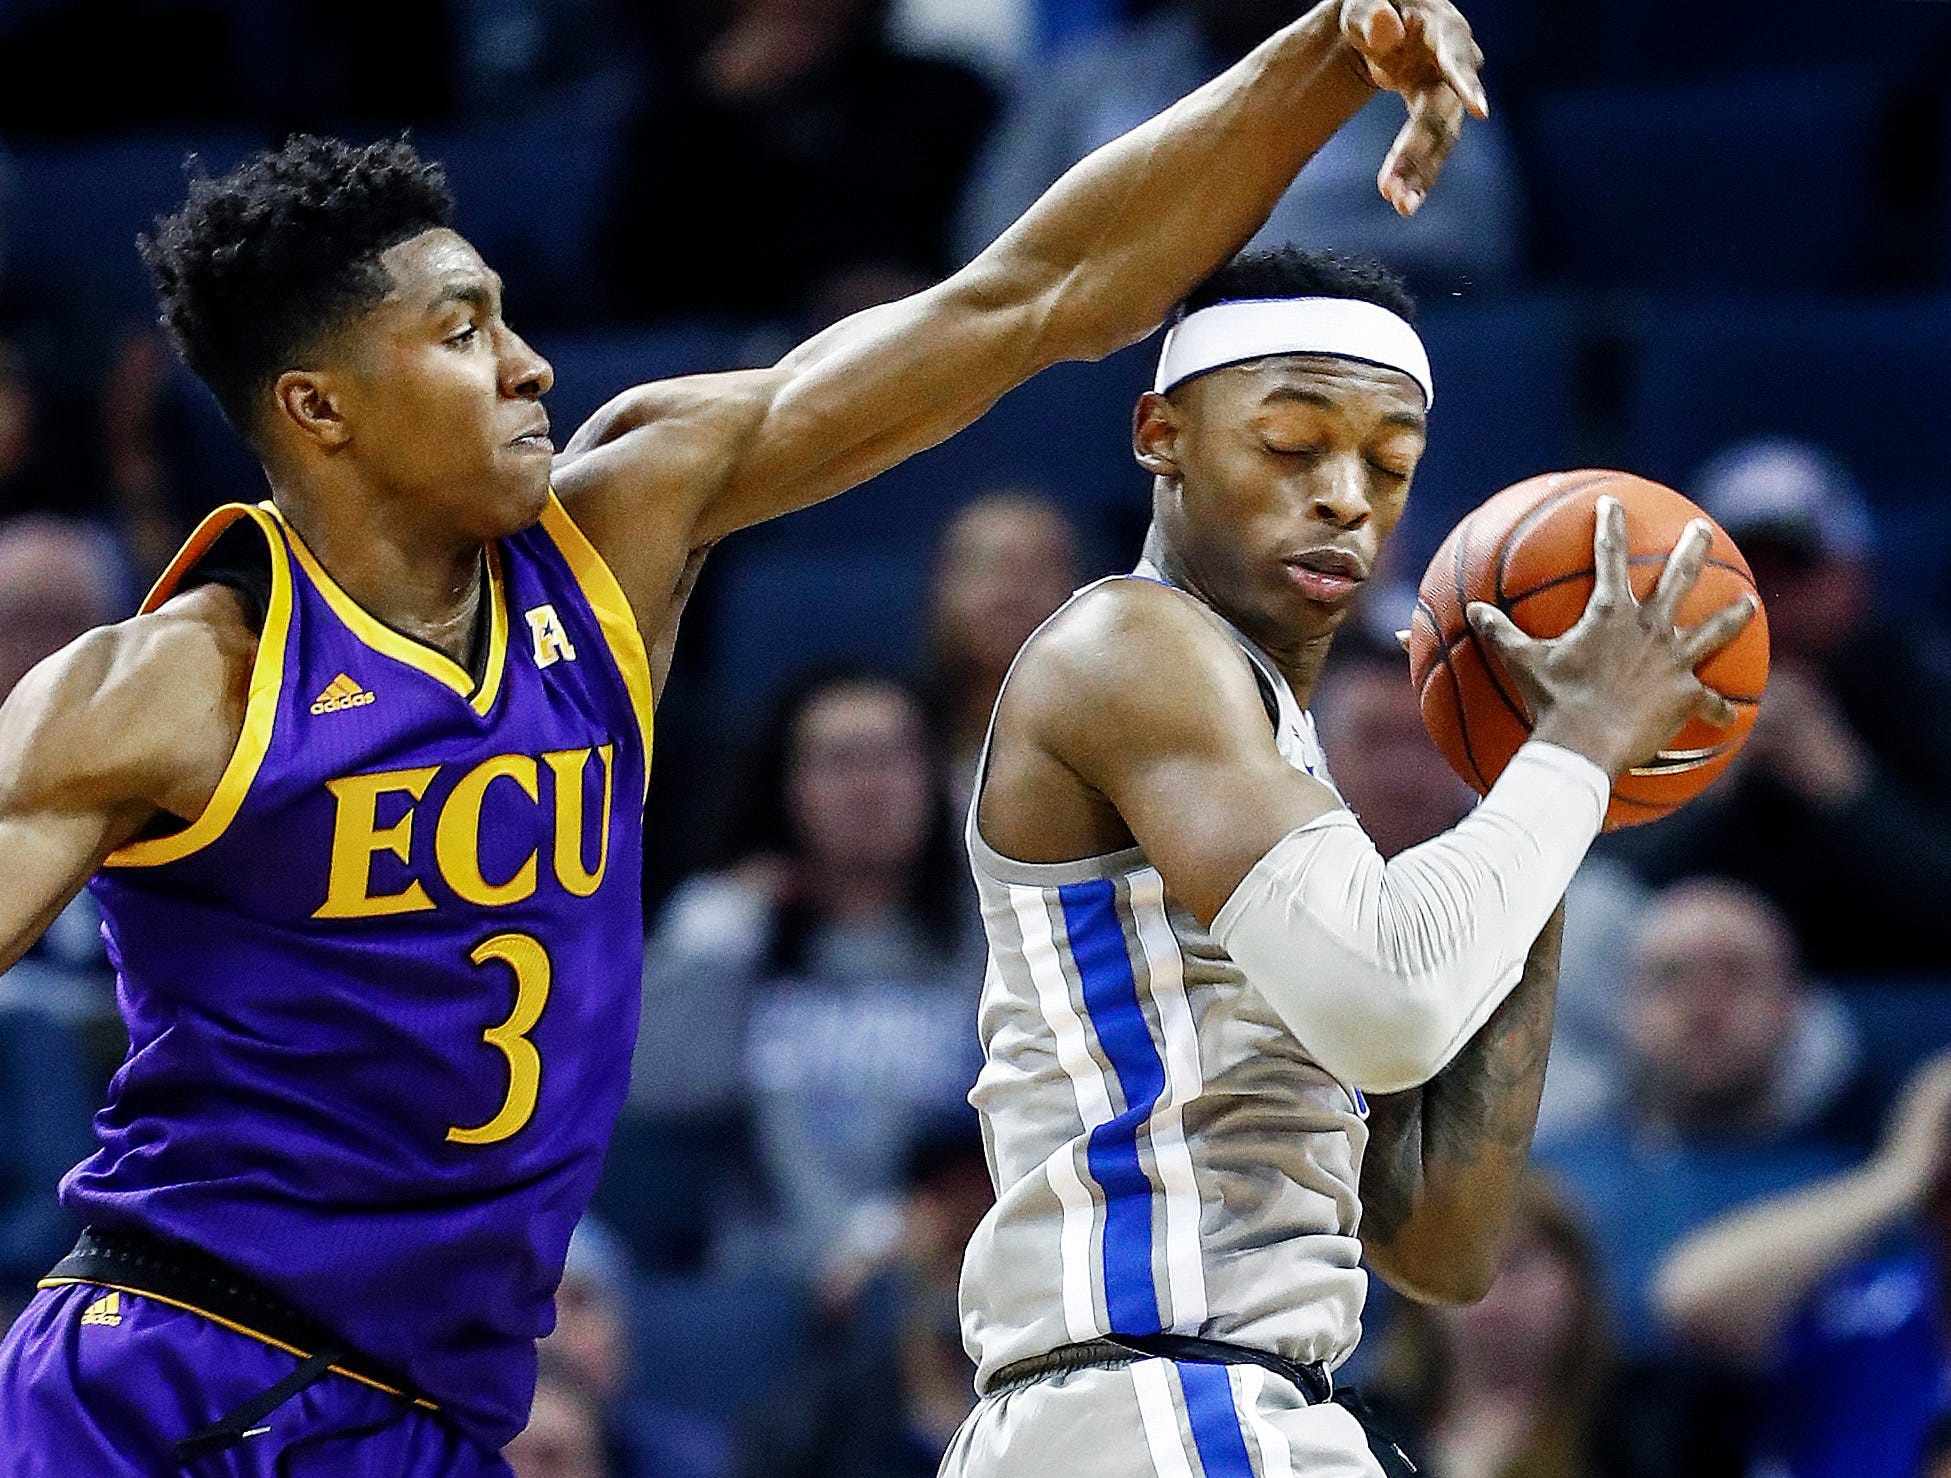 Memphis defender Kyvon Davenport (right) grabs a rebound in front of ECU forward Seth LeDay (left) during action at the FedExForum, Thursday, January 10, 2019.